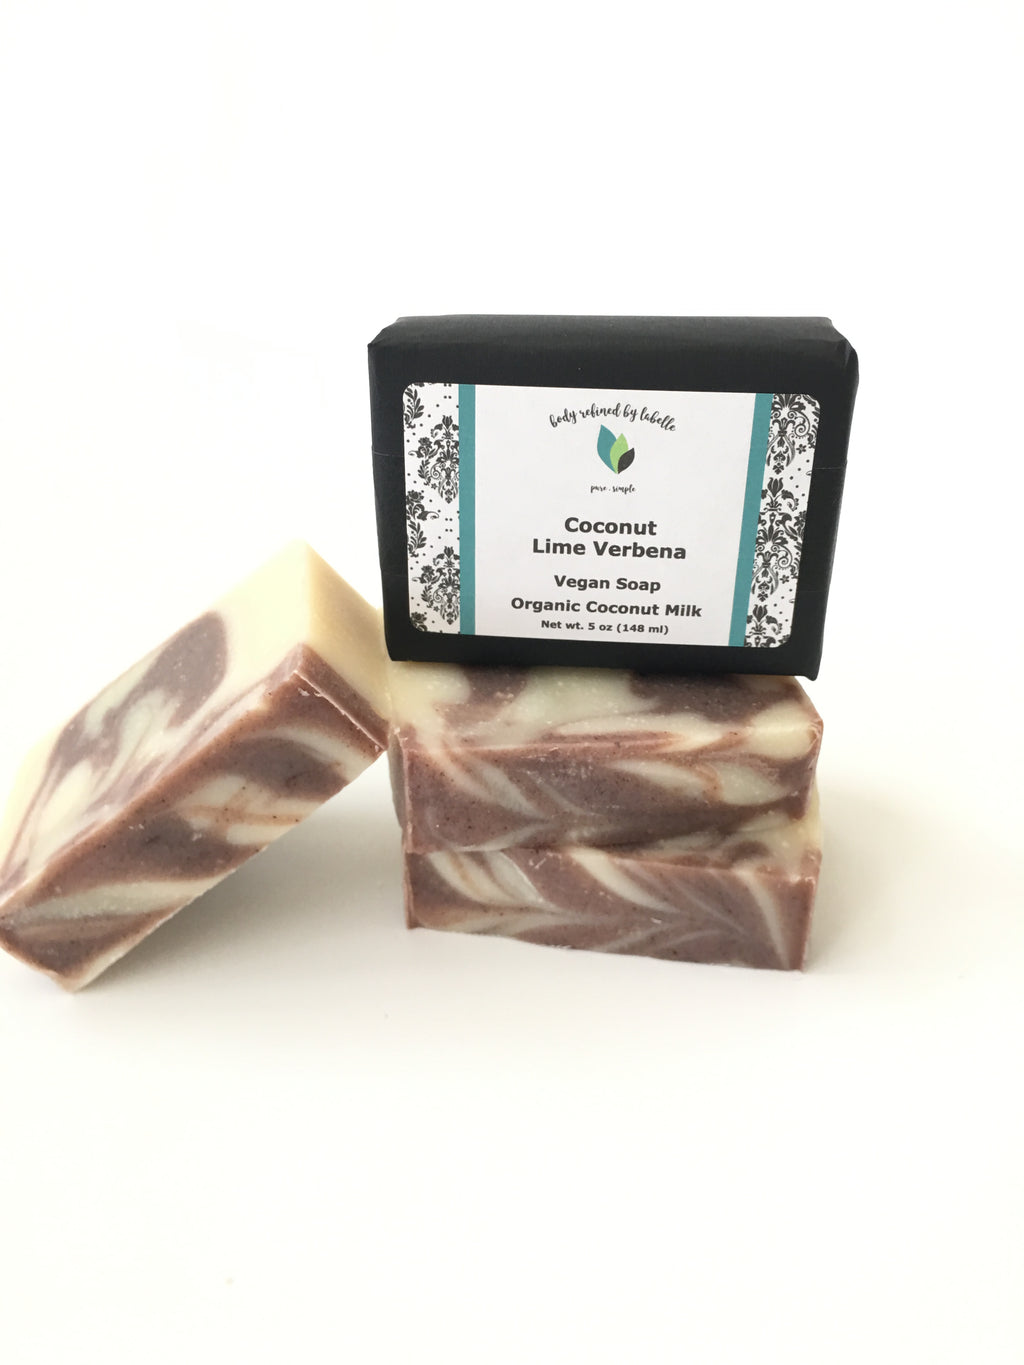 Coconut Lime Verbena Soap | Vegan Soap